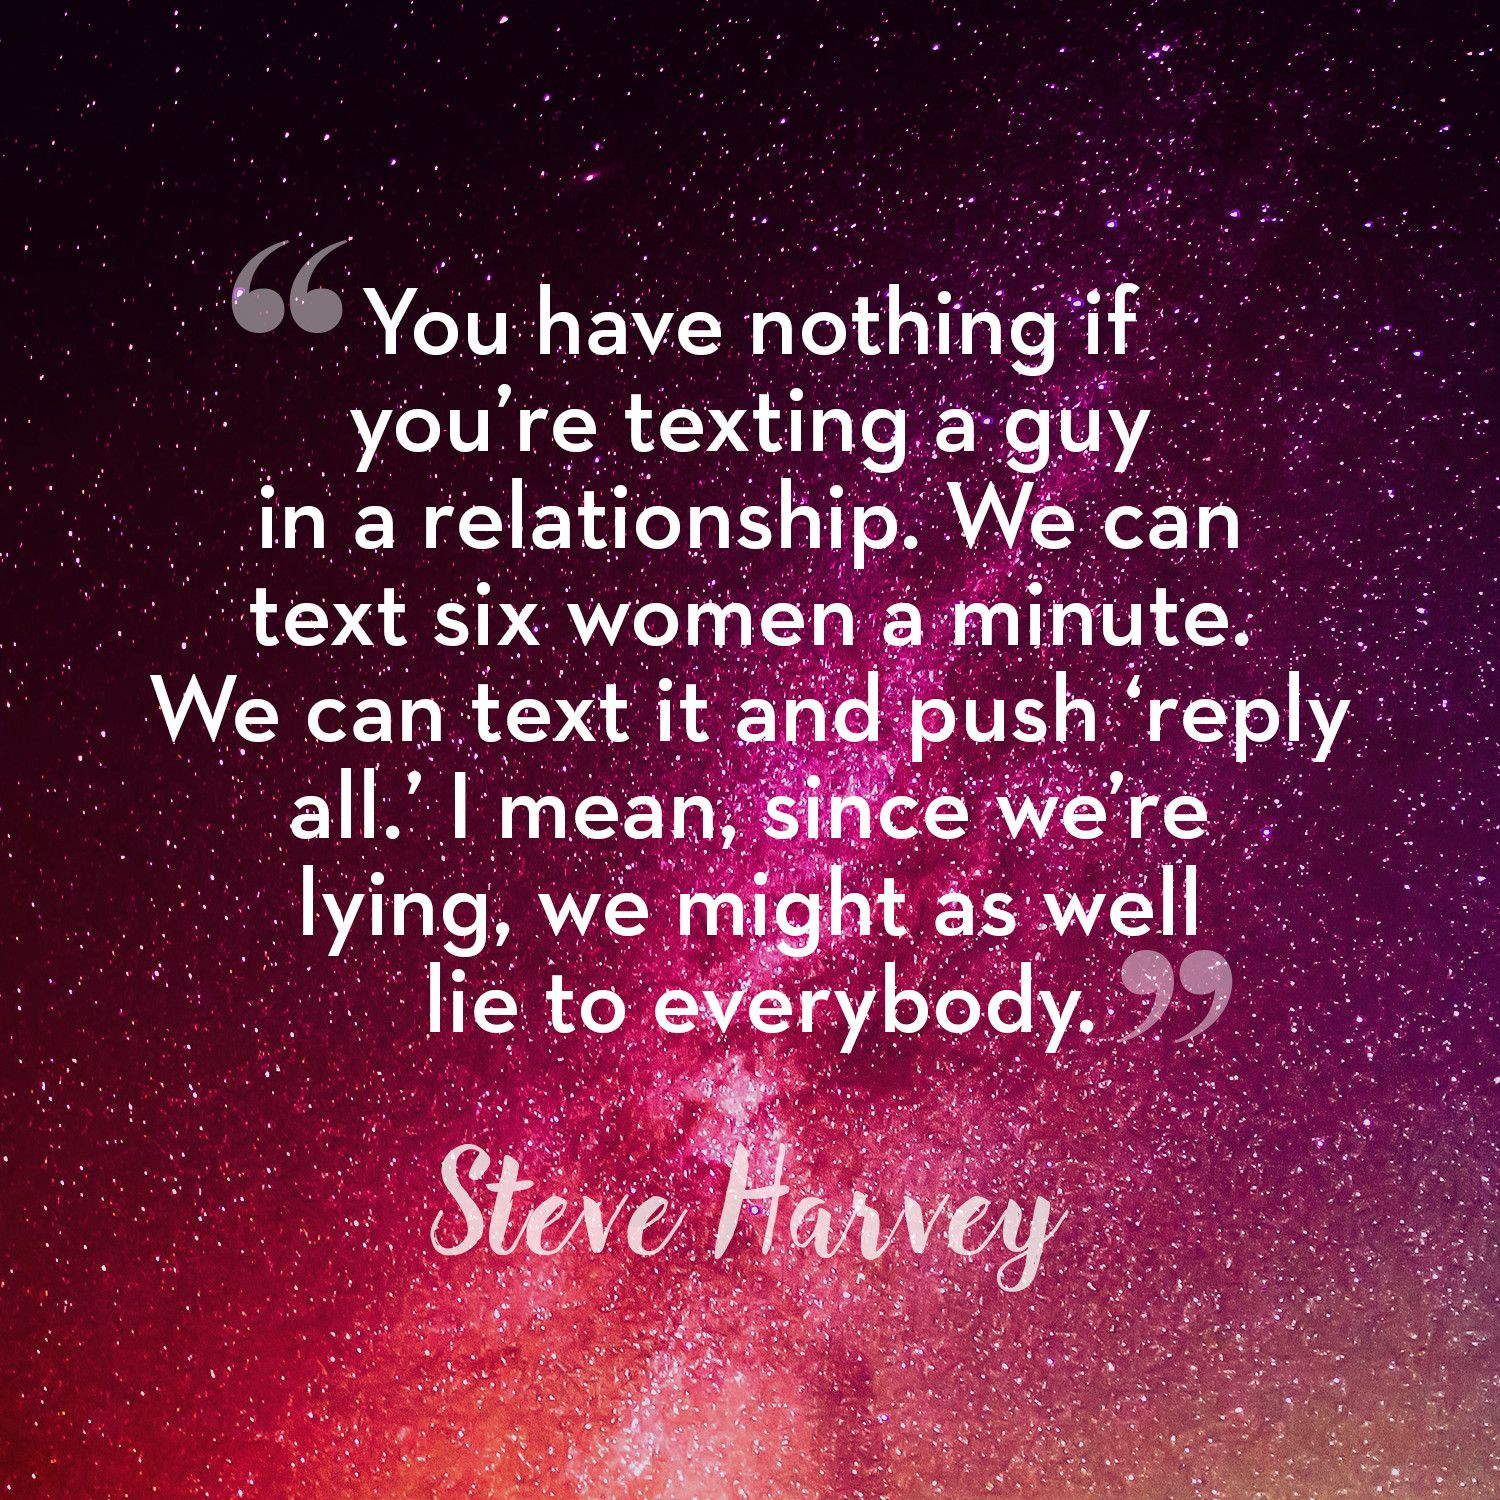 Harvey dating rules steve What Is